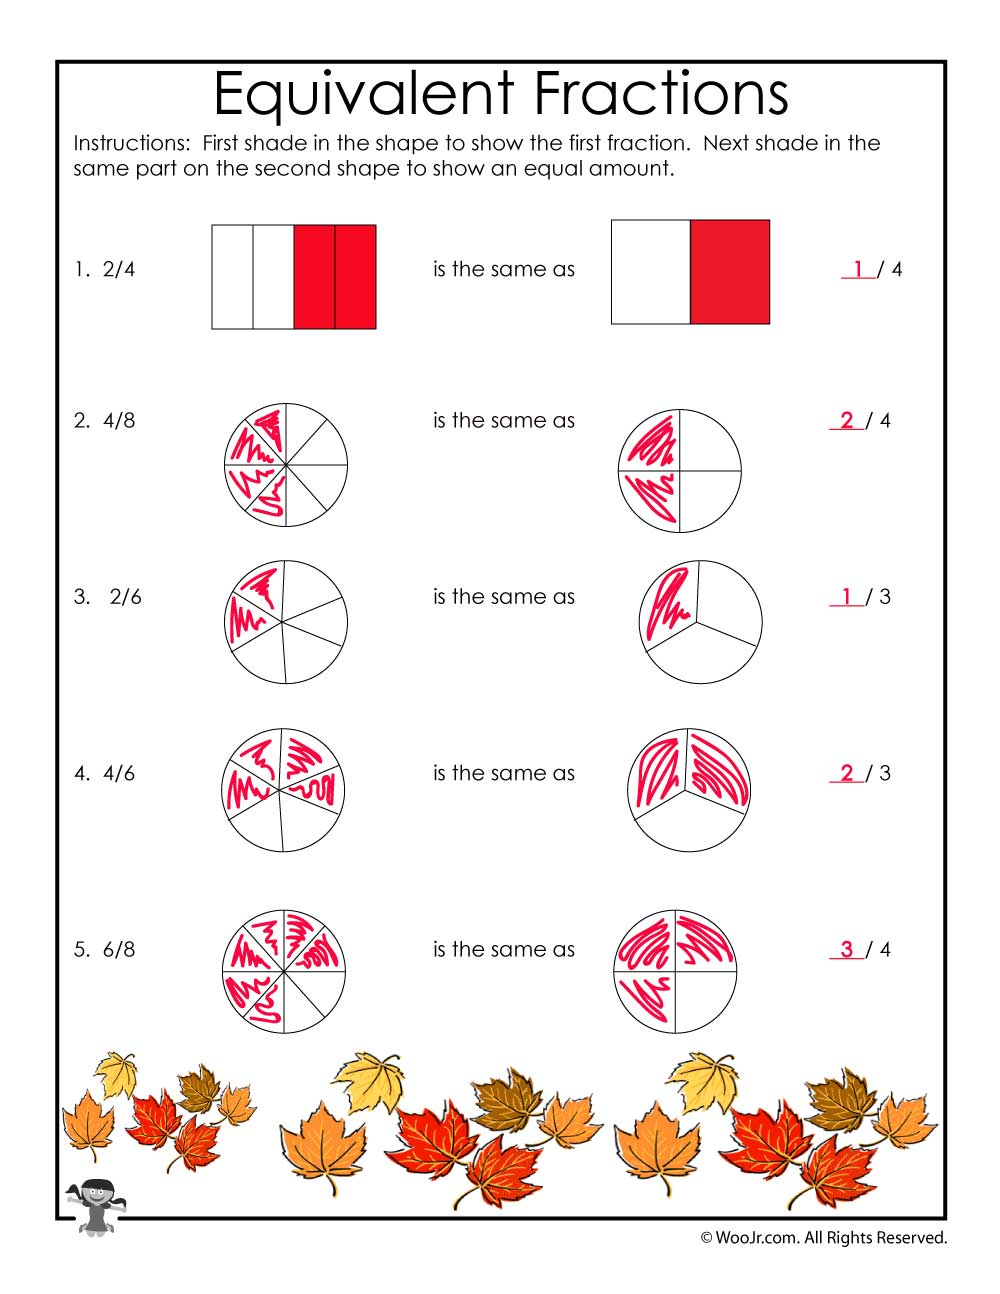 fall equivalent fractions worksheet - answers | woo! jr. kids activities